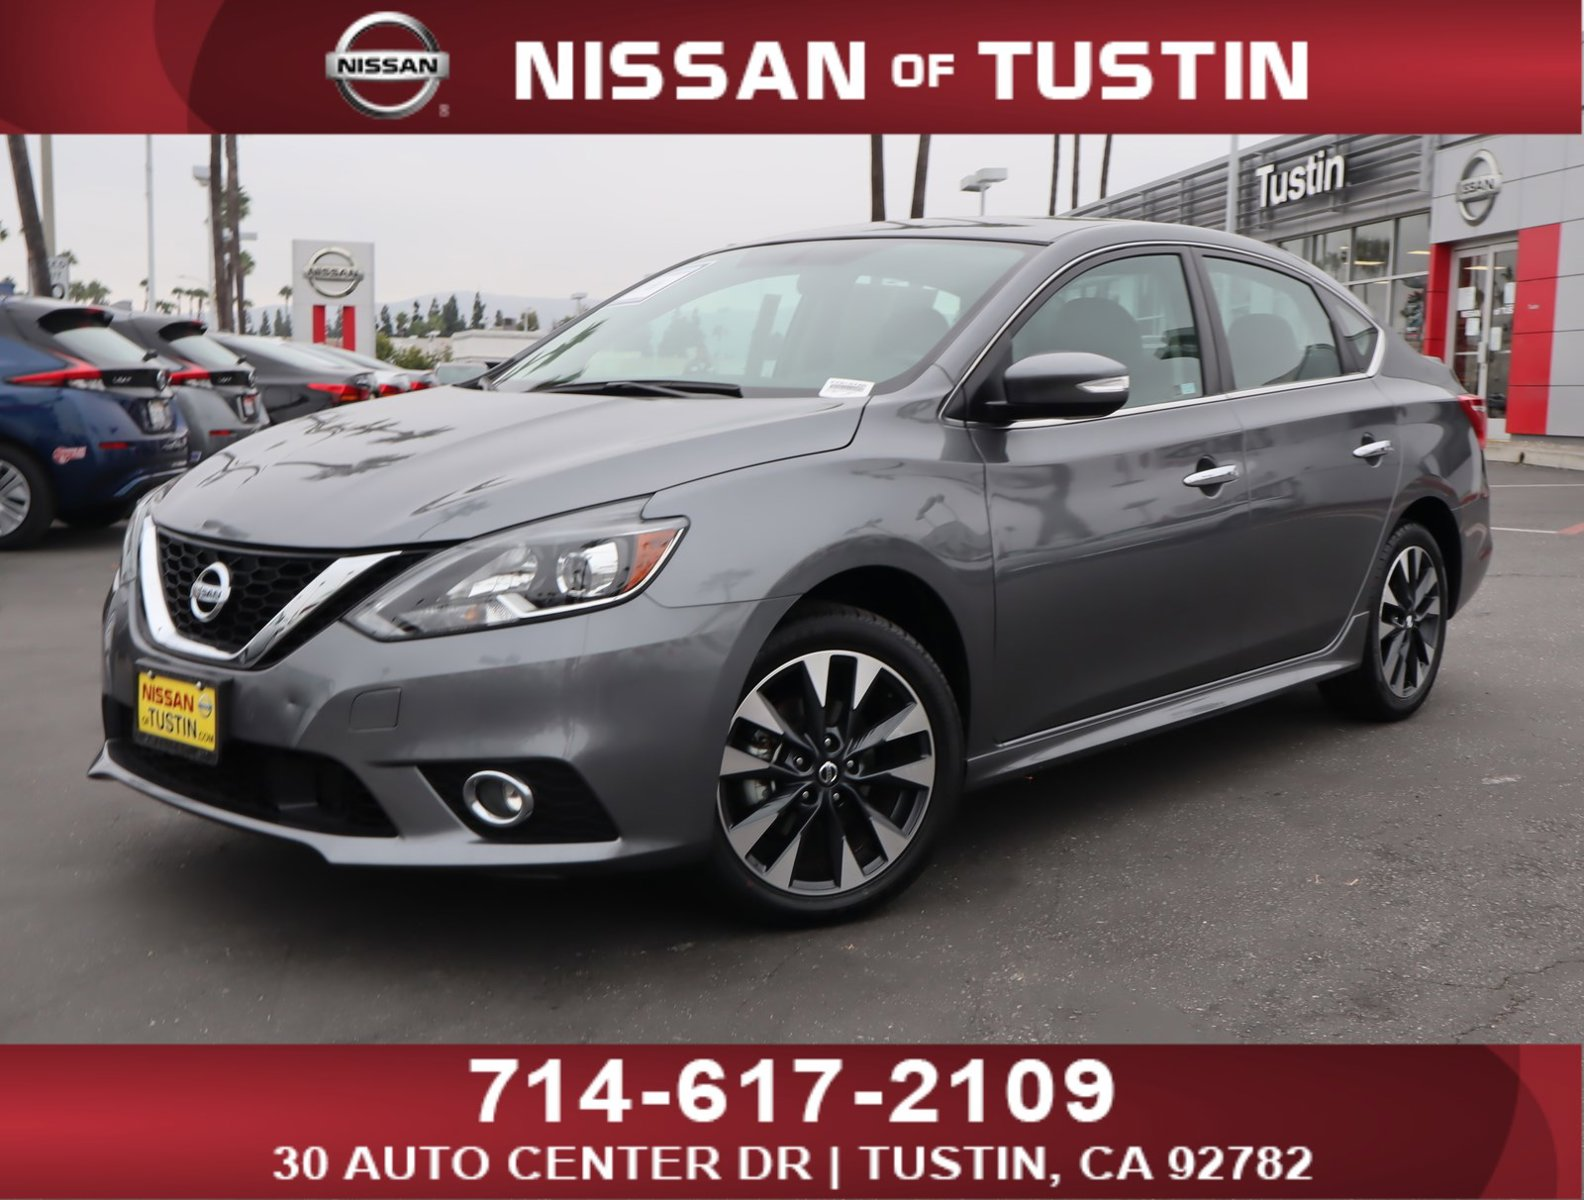 2019 Nissan Sentra SR SR CVT Regular Unleaded I-4 1.8 L/110 [1]